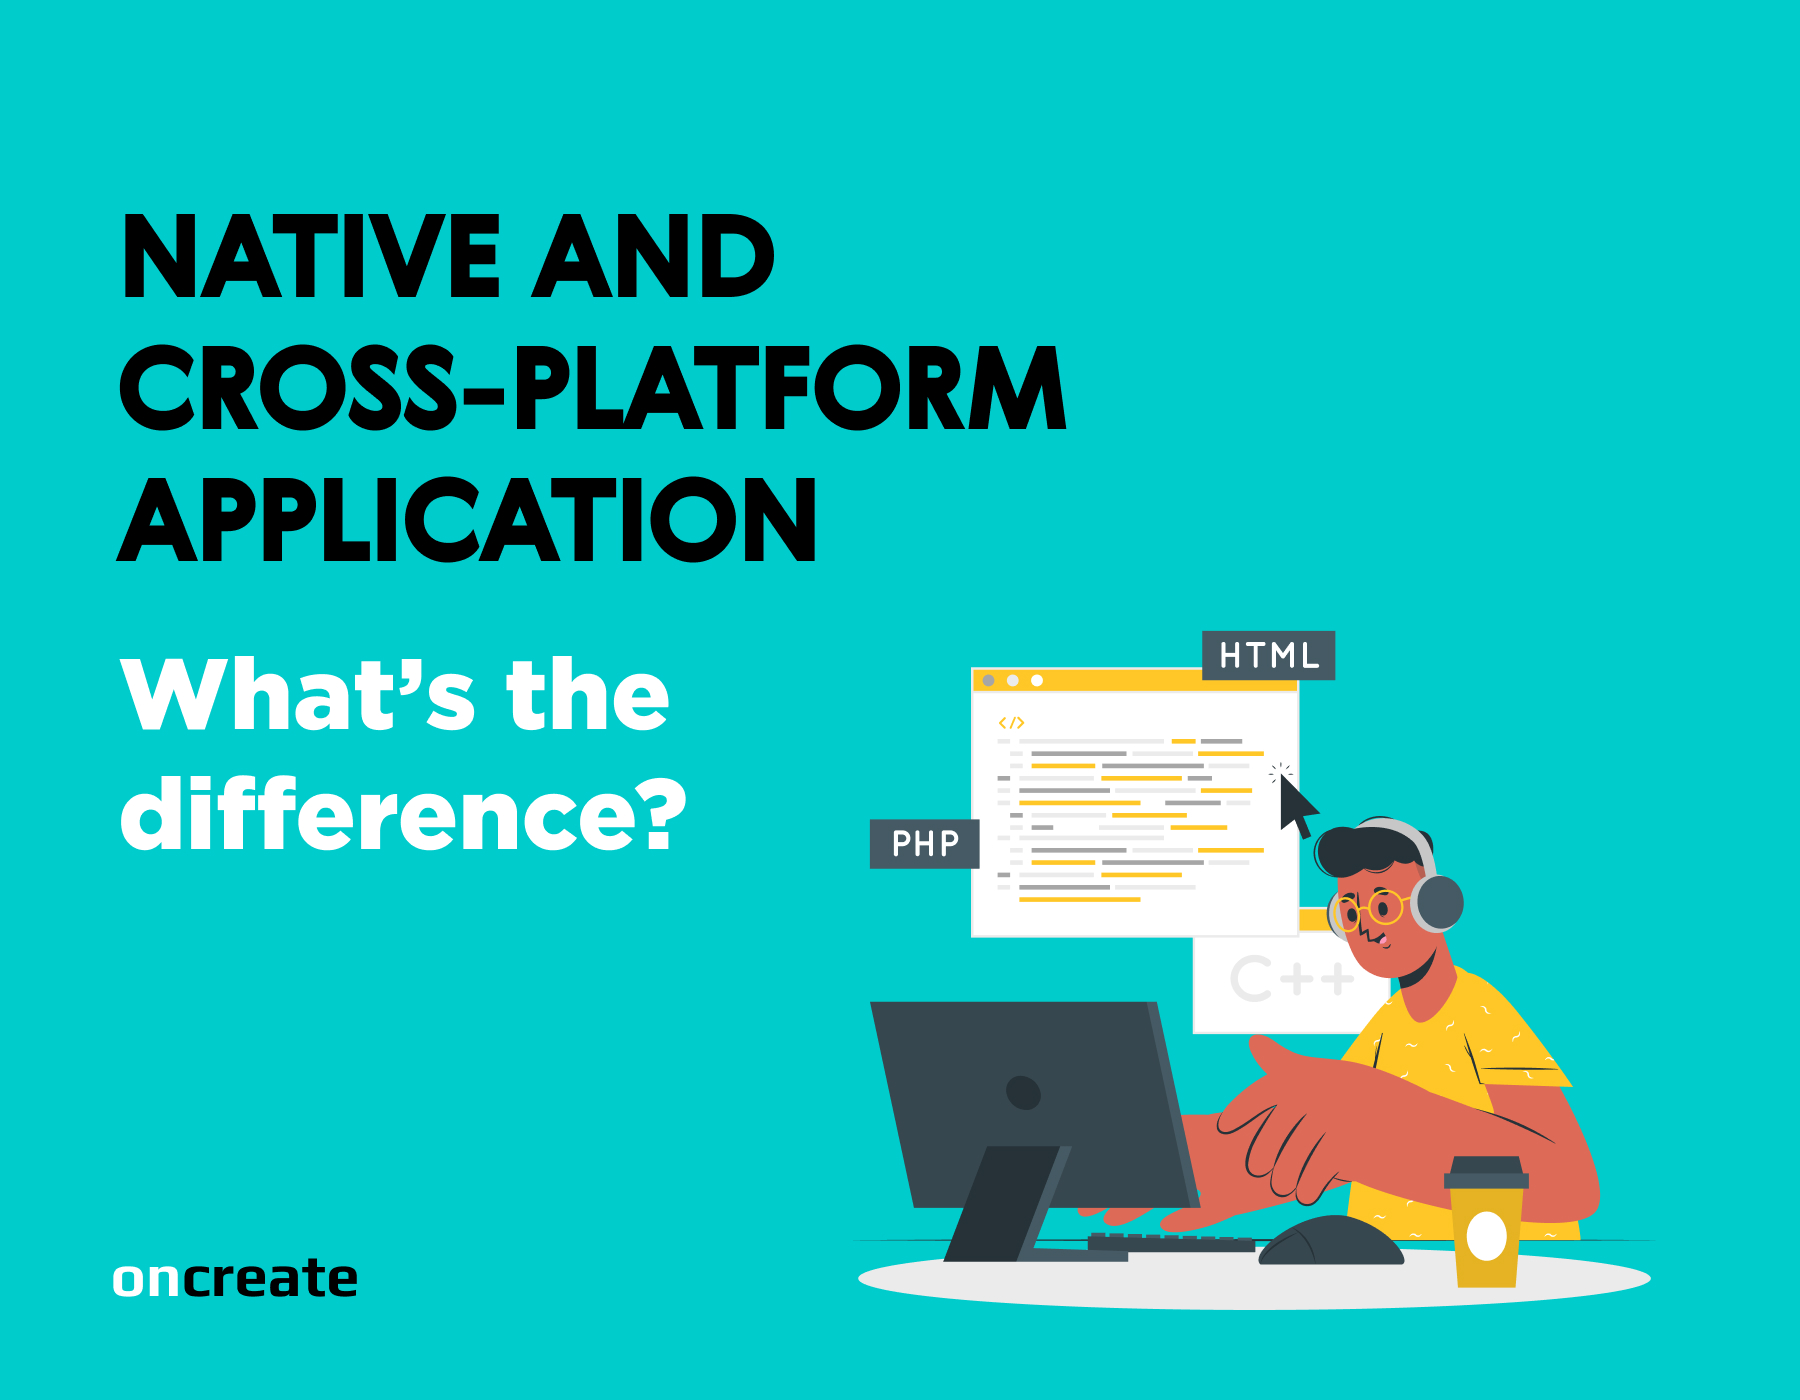 Native and Cross-platform Application: What's the Difference?